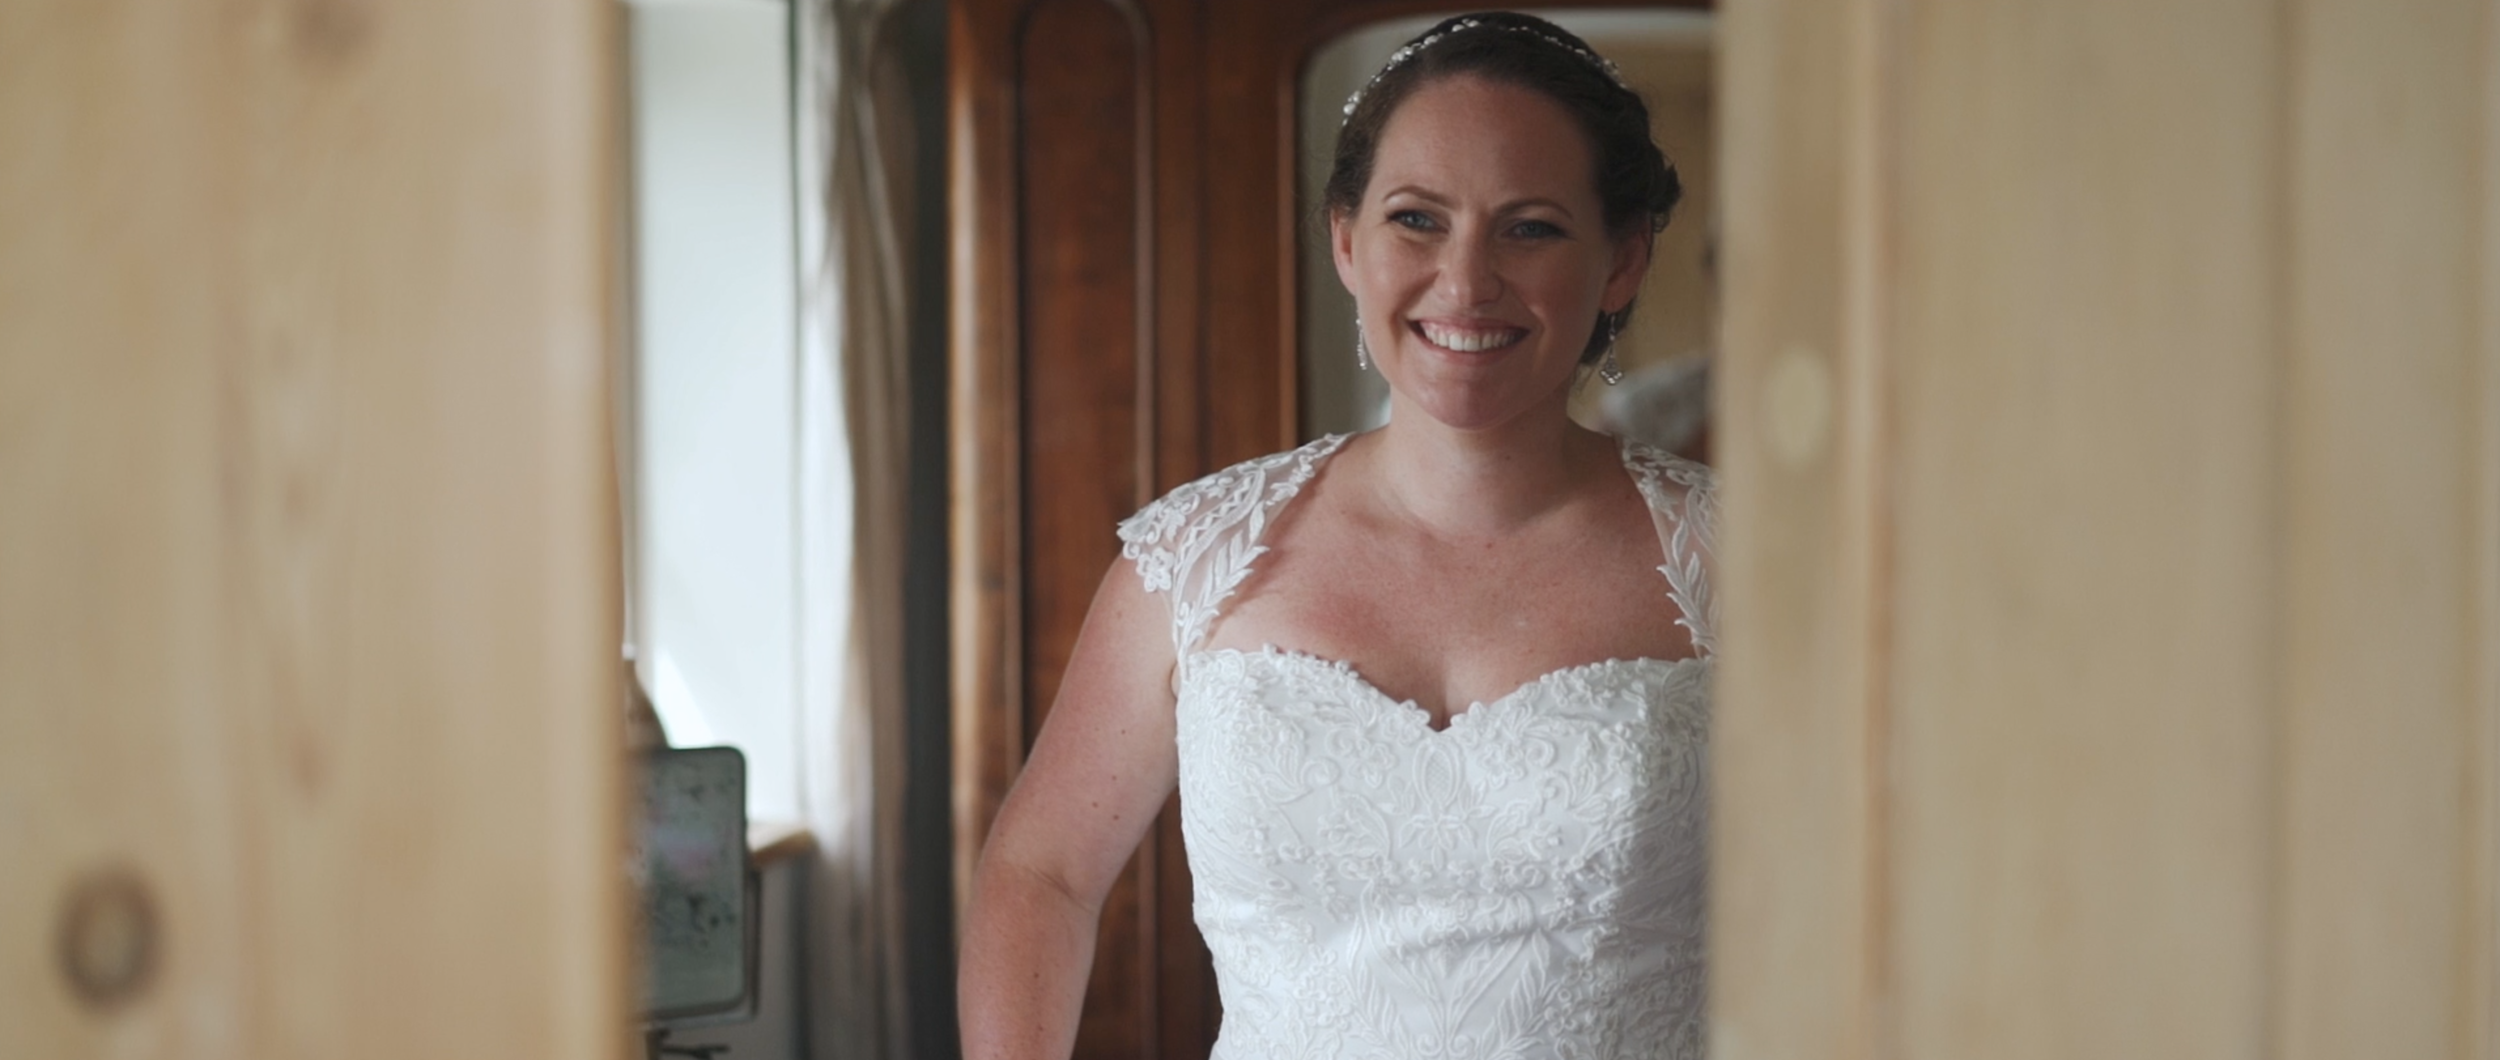 wedding videography Yorkshire